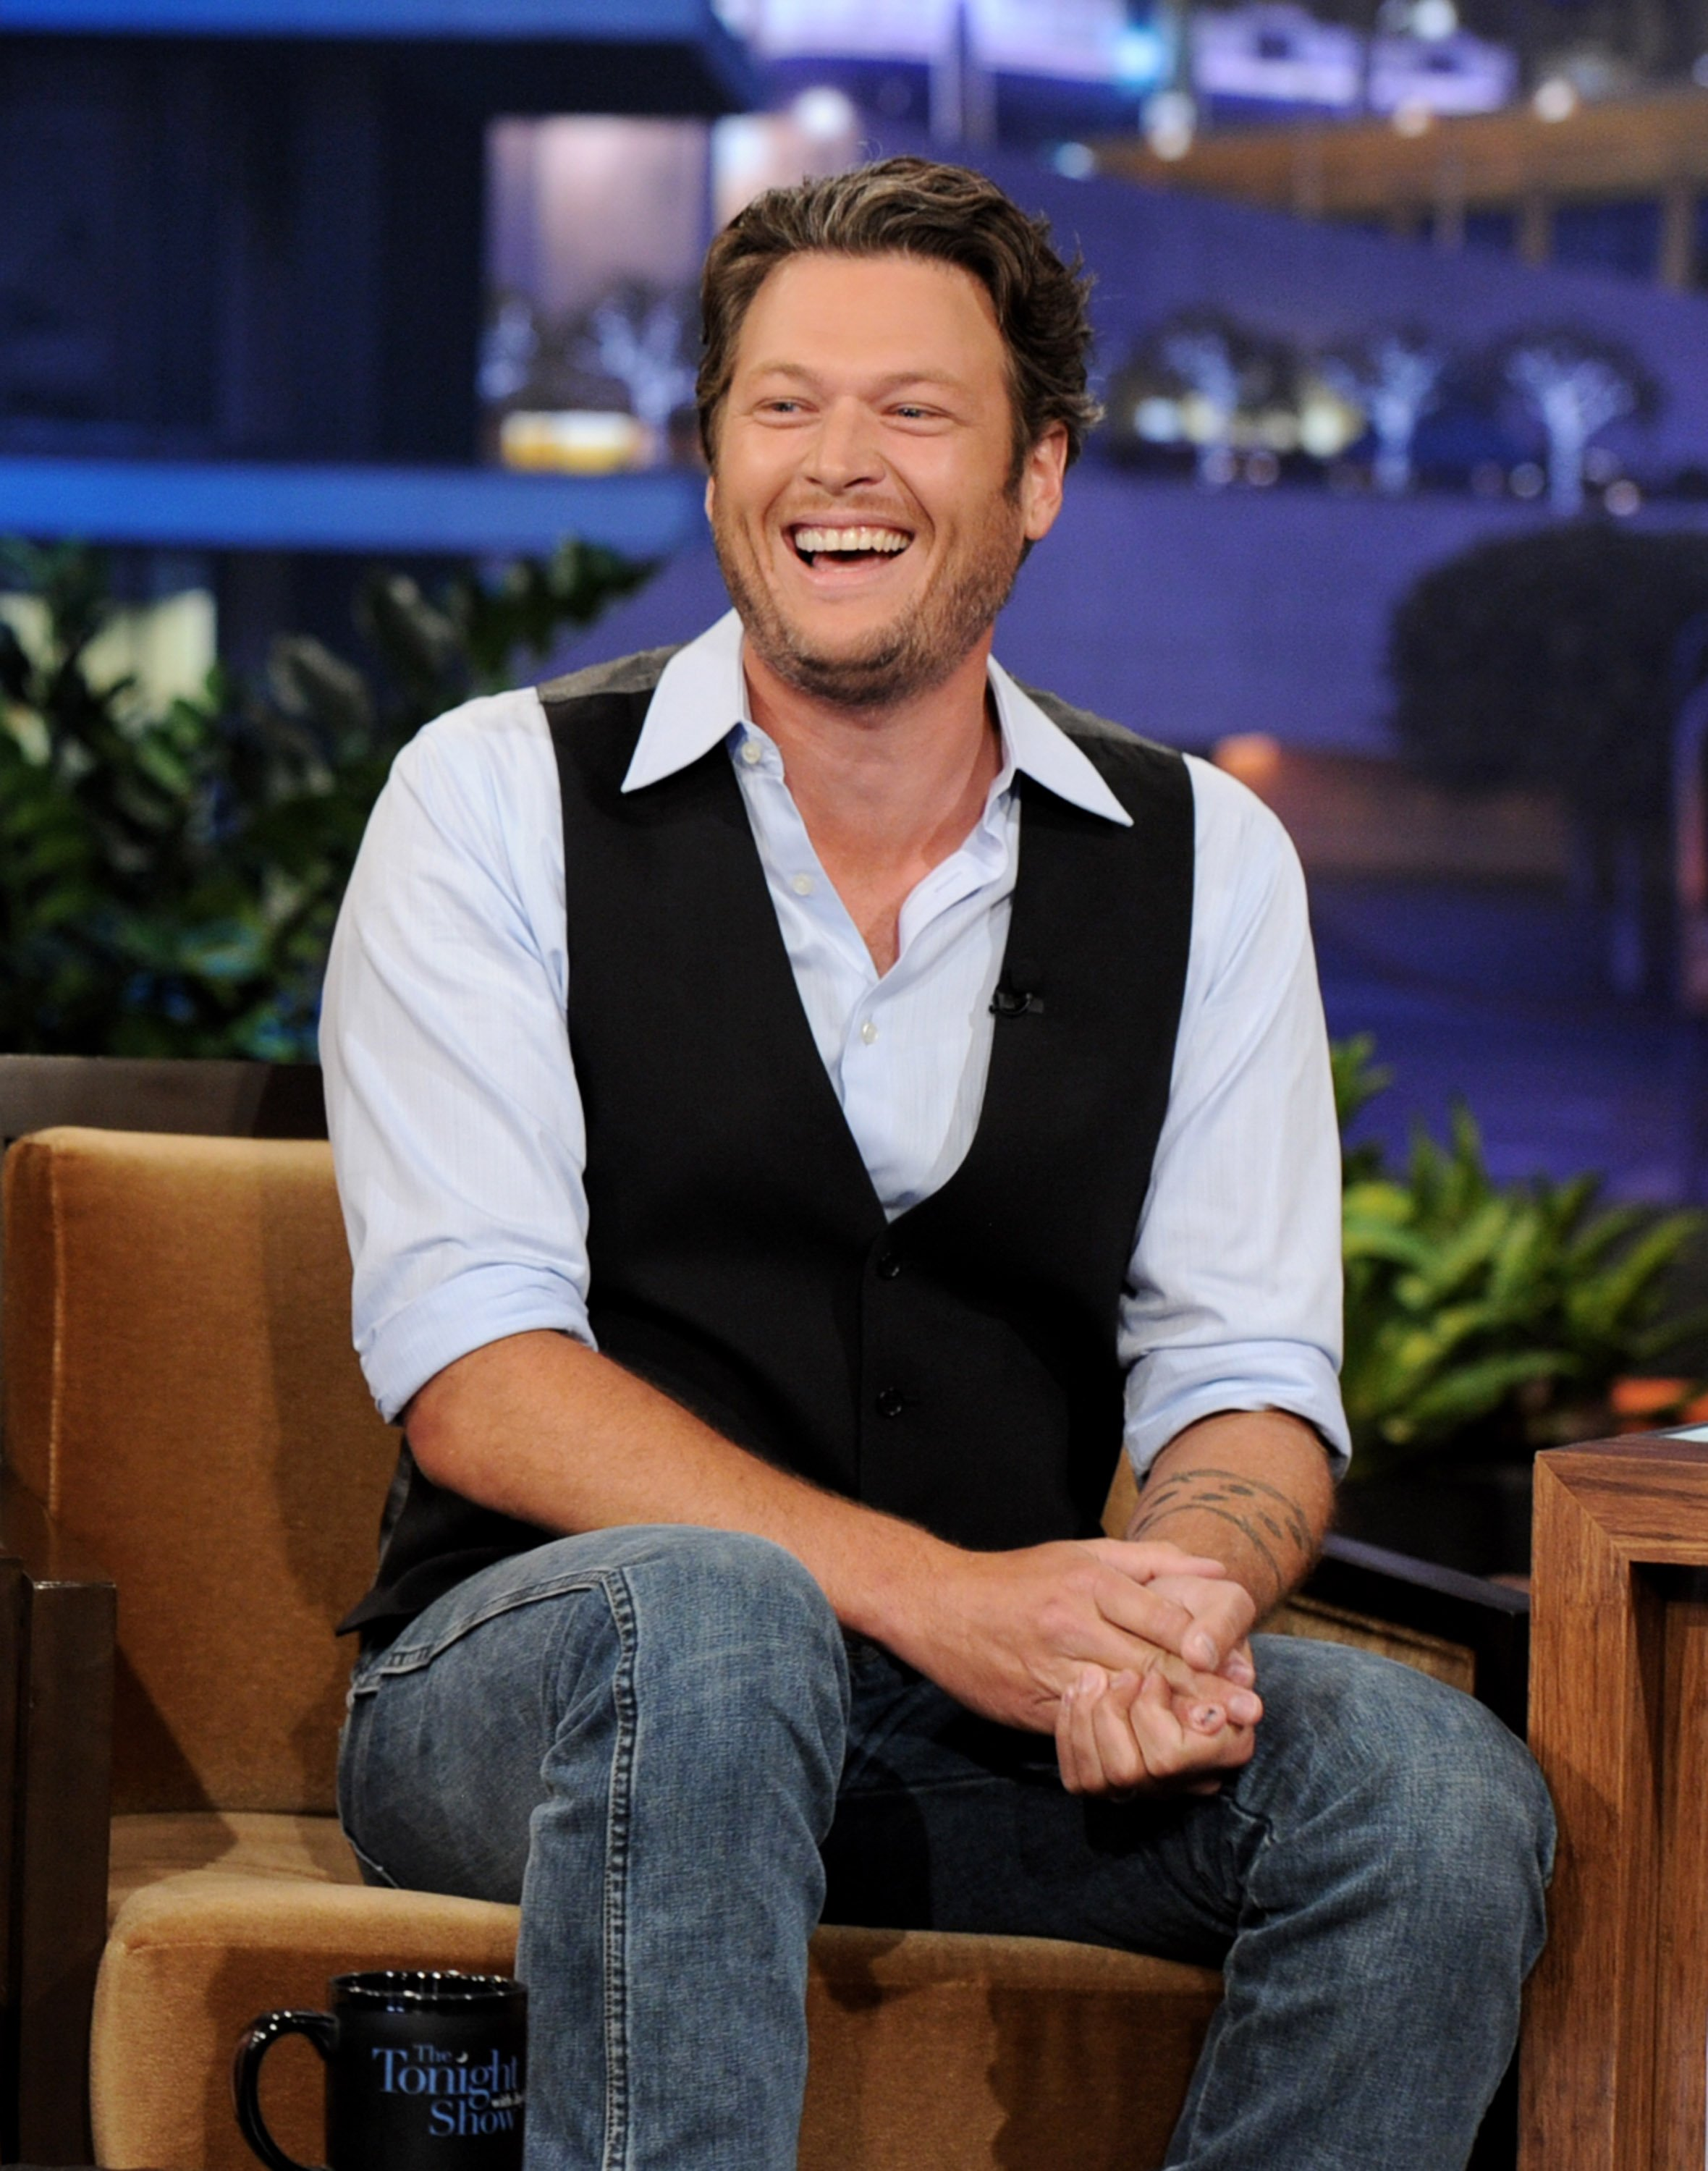 Blake Shelton appears on the Tonight Show with Jay Leno at NBC Studios on June 15, 2011, in Burbank, California. | Source: Getty Images.